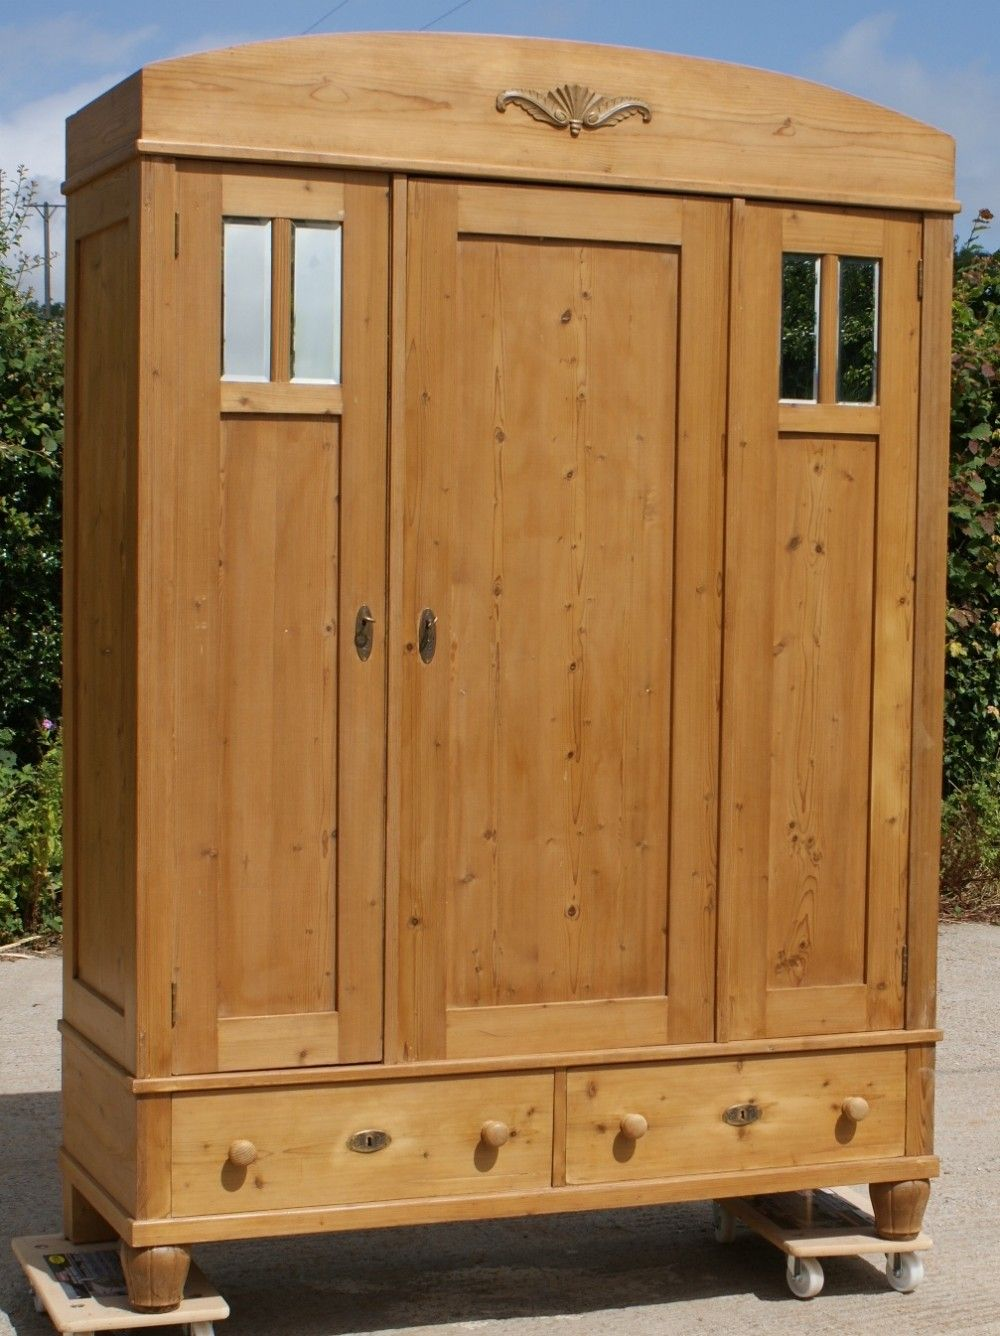 Incroyable EARLY 20th CENTURY LARGE ANTIQUE GERMAN SOLID PINE ARMOIRE WARDROBE